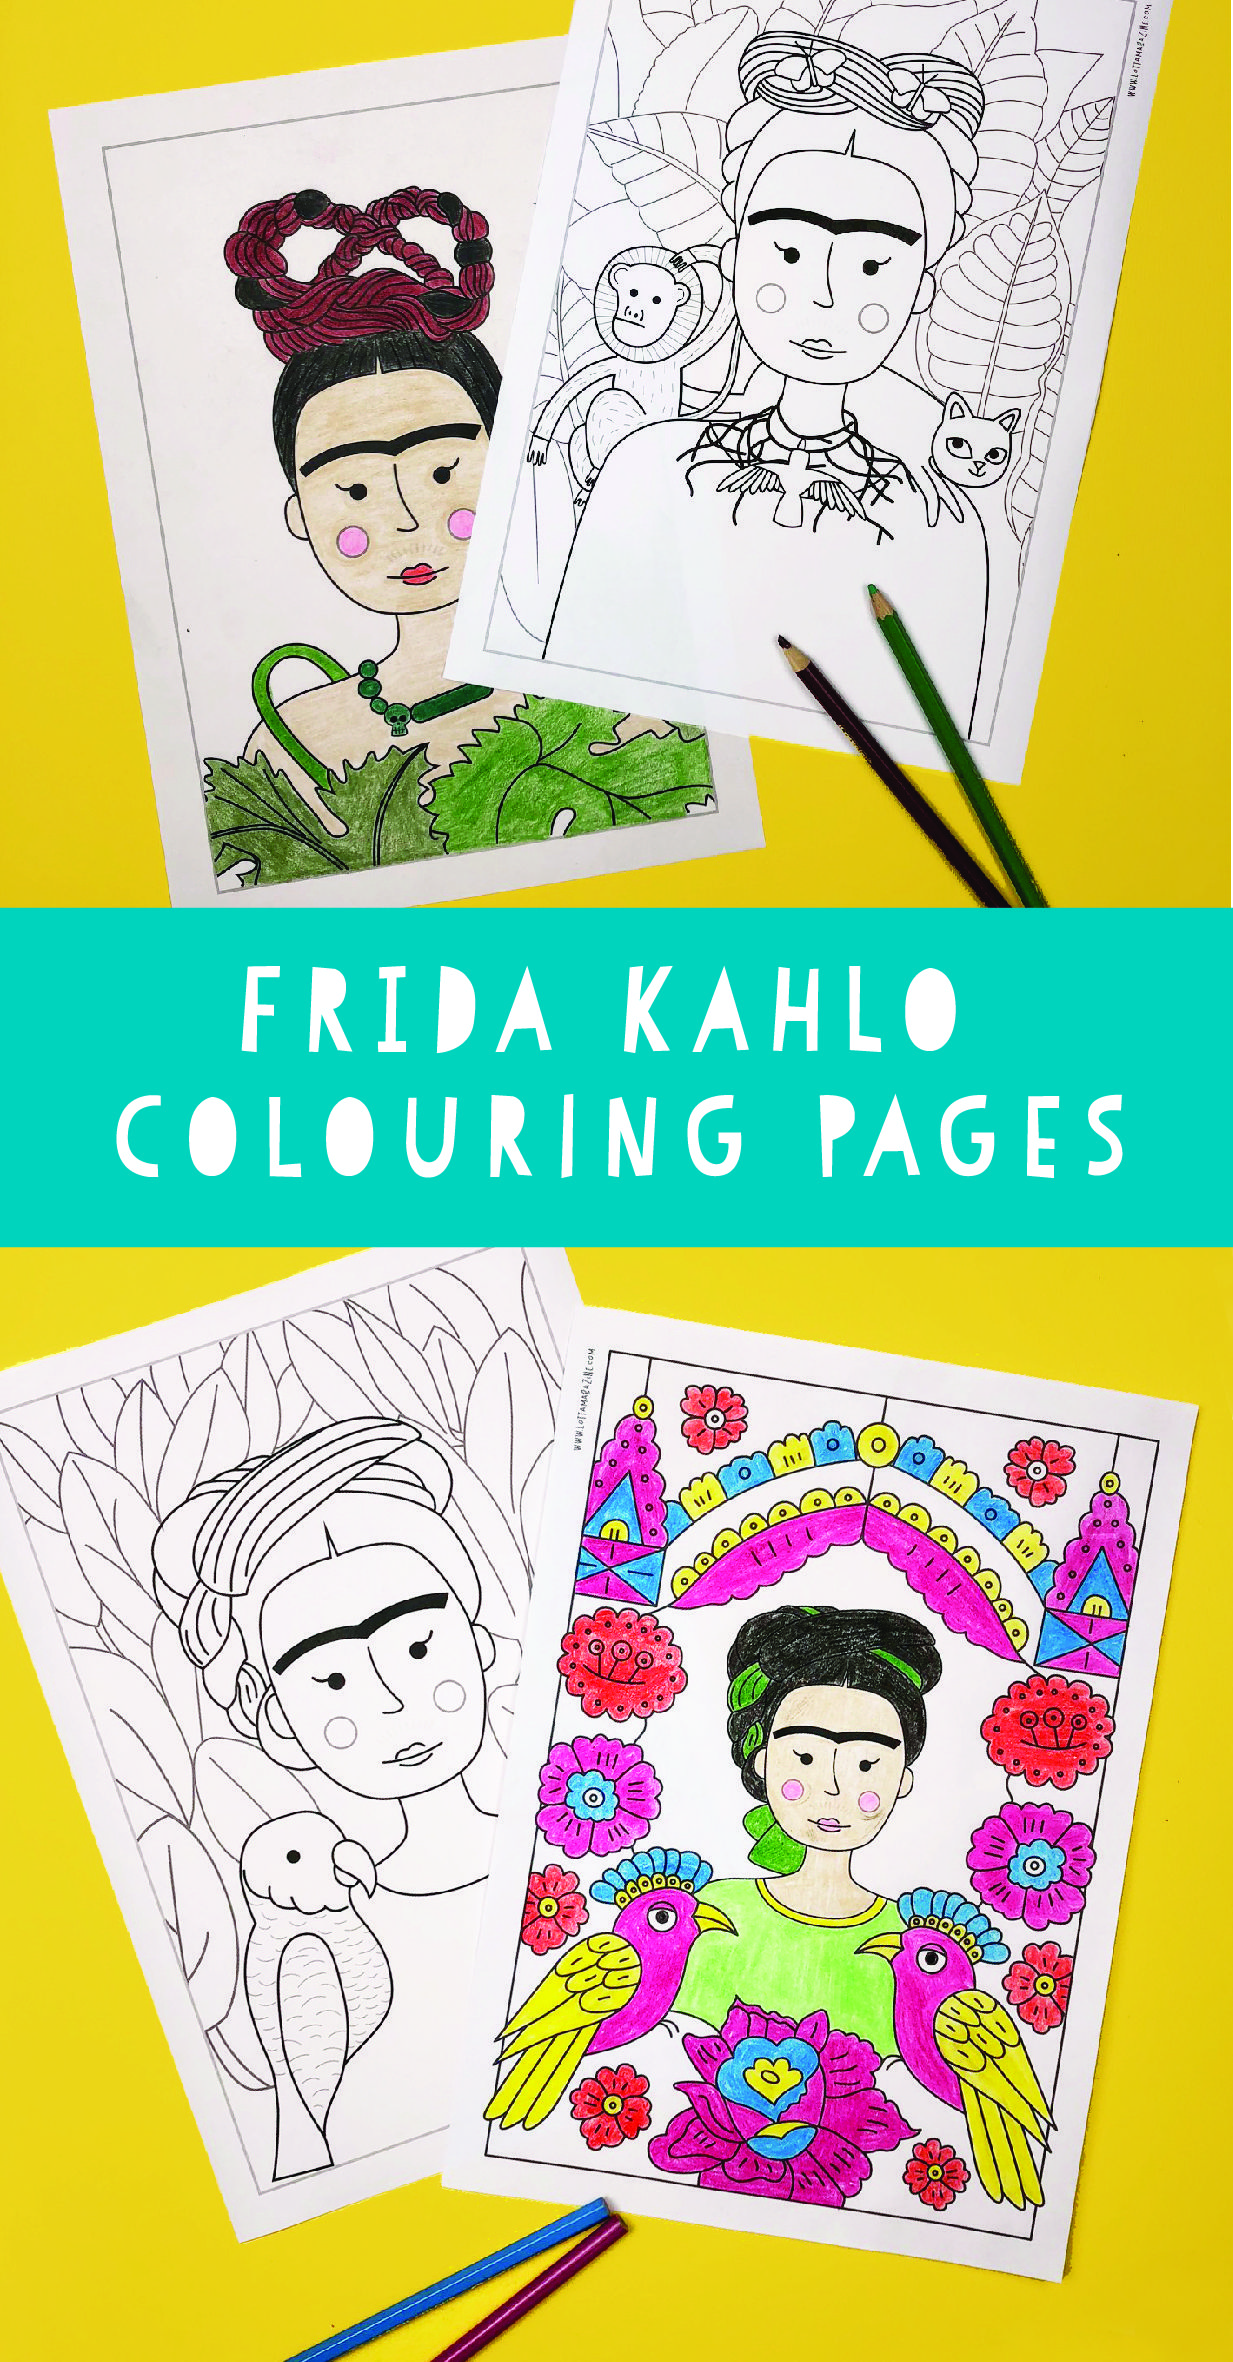 Frida kahlo colouring pagescoloring pages recreating her